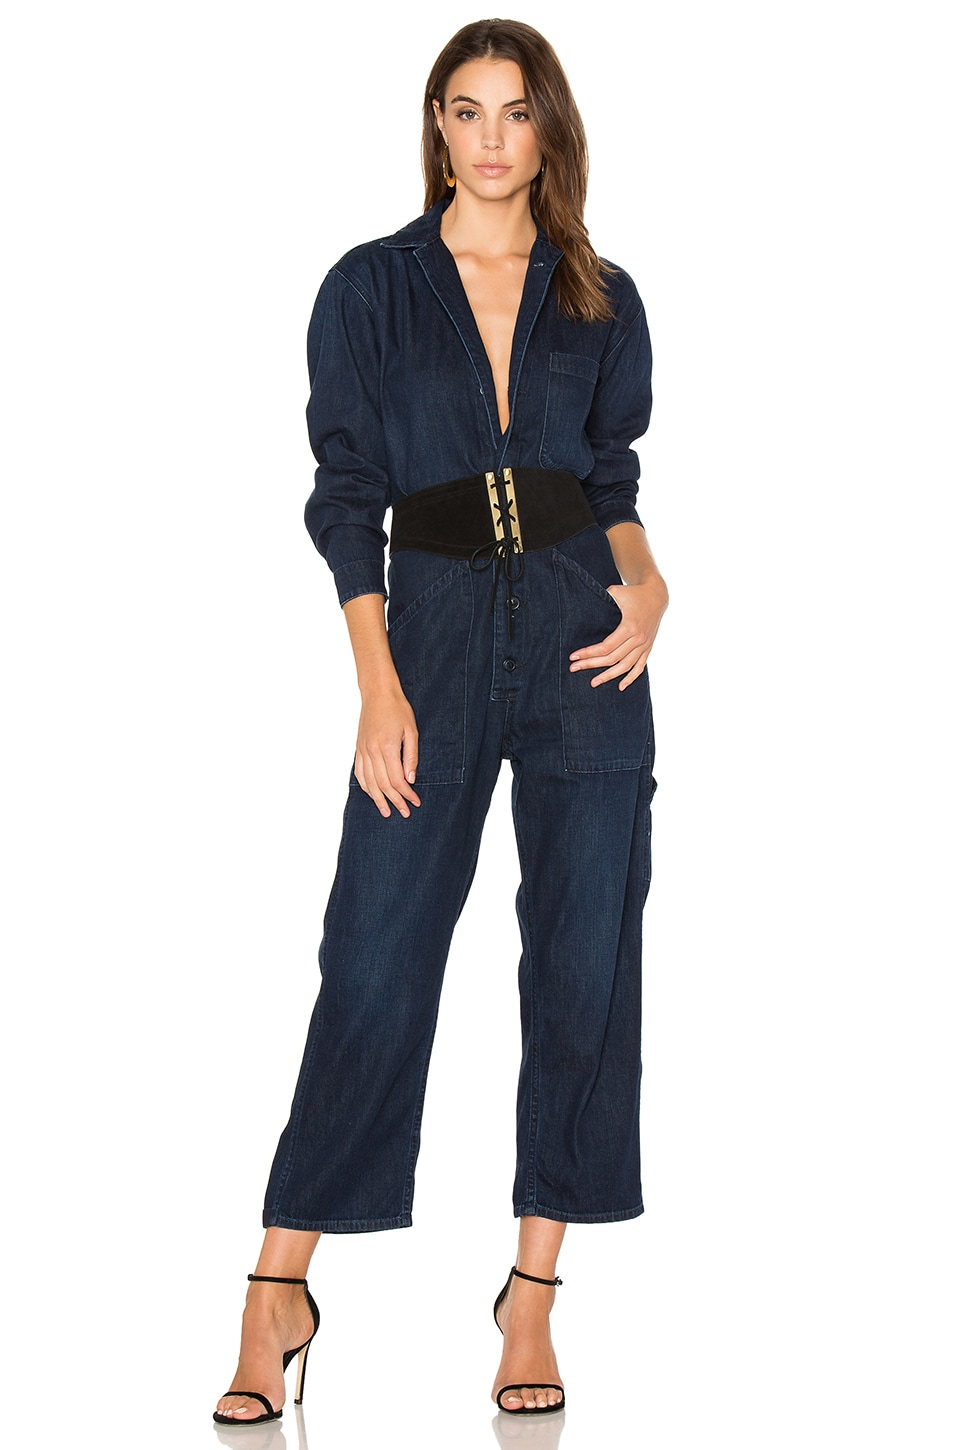 Citizens of Humanity Hailey Jumpsuit in Escape